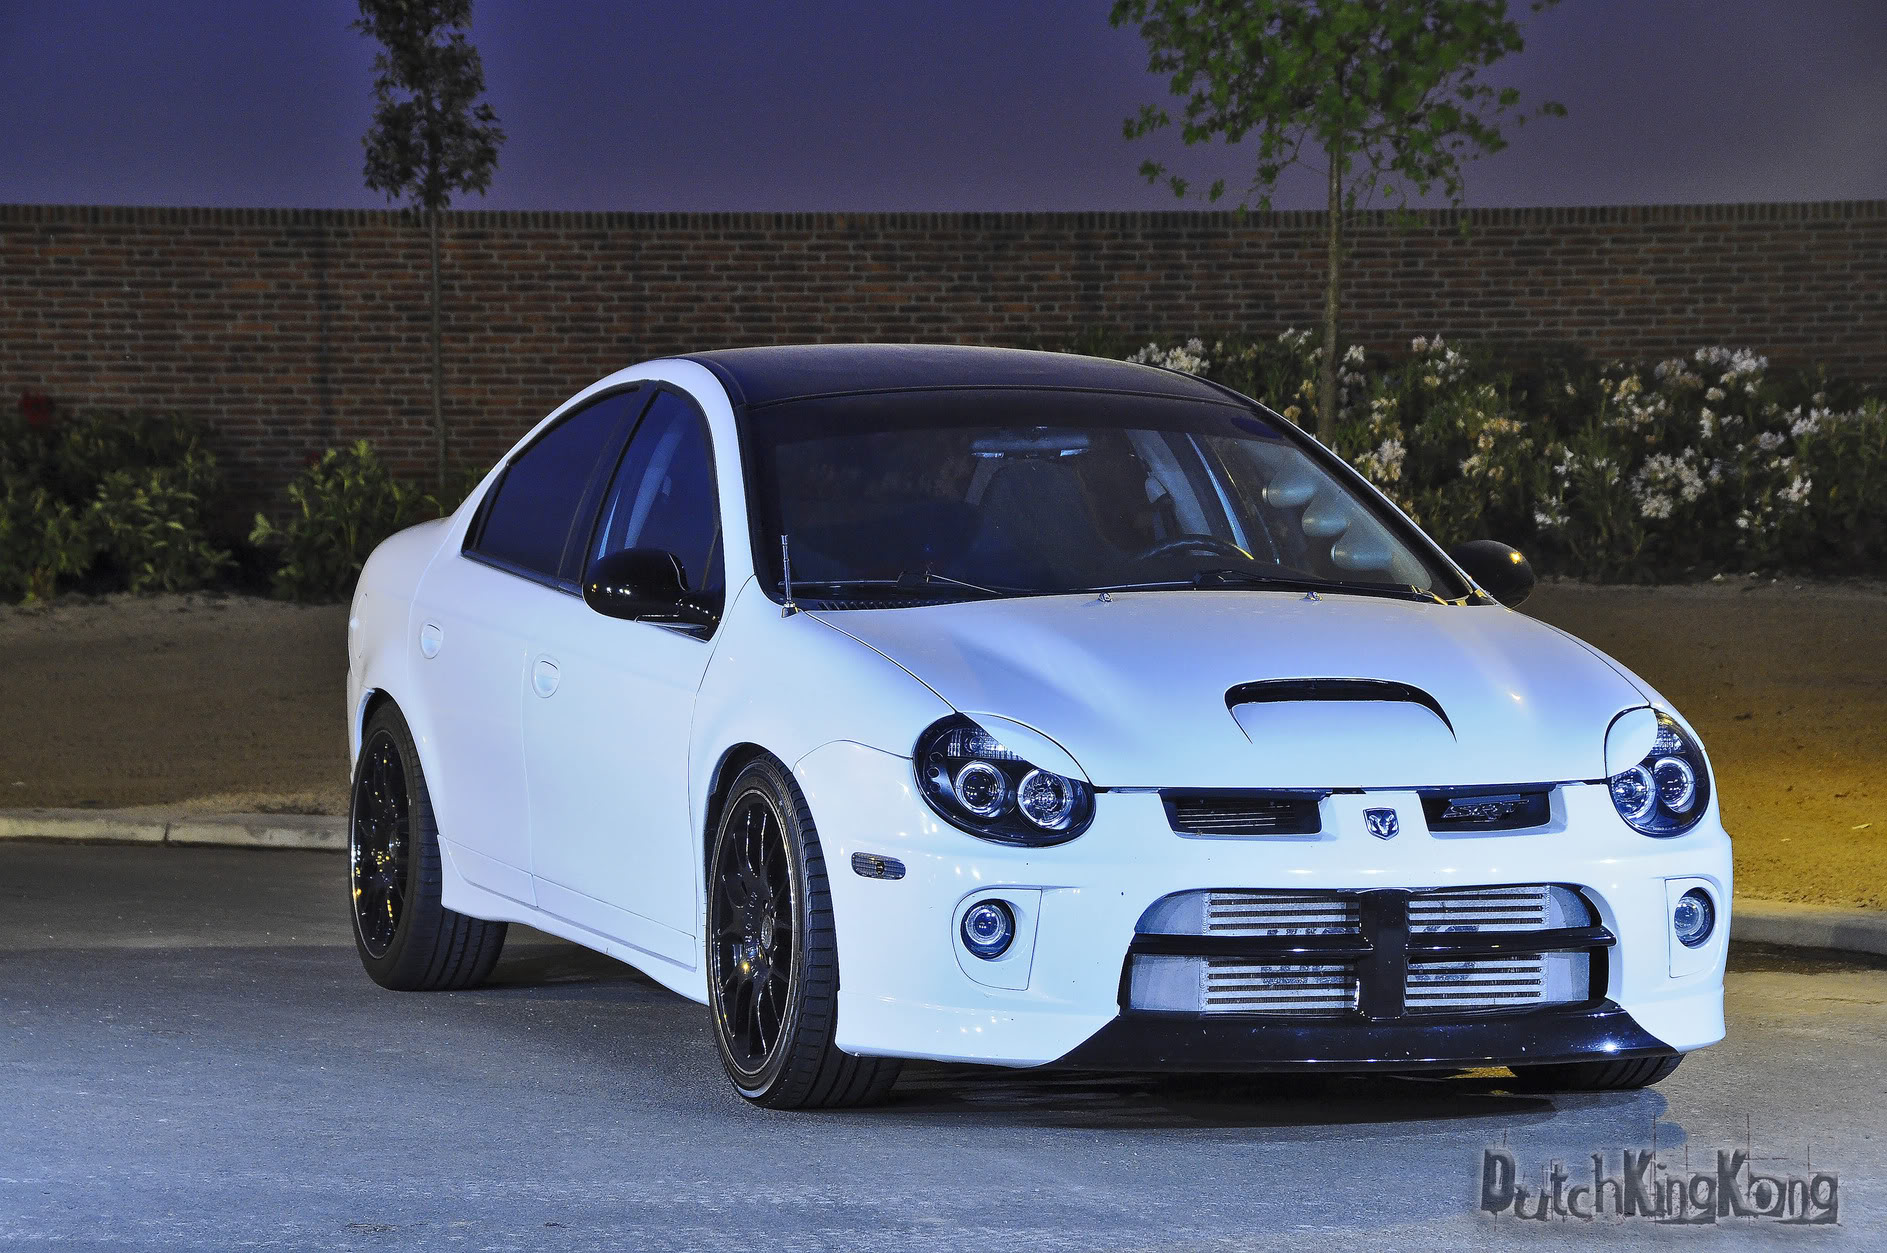 Srt 4 Wallpaper Wallpaper size 1887x1253